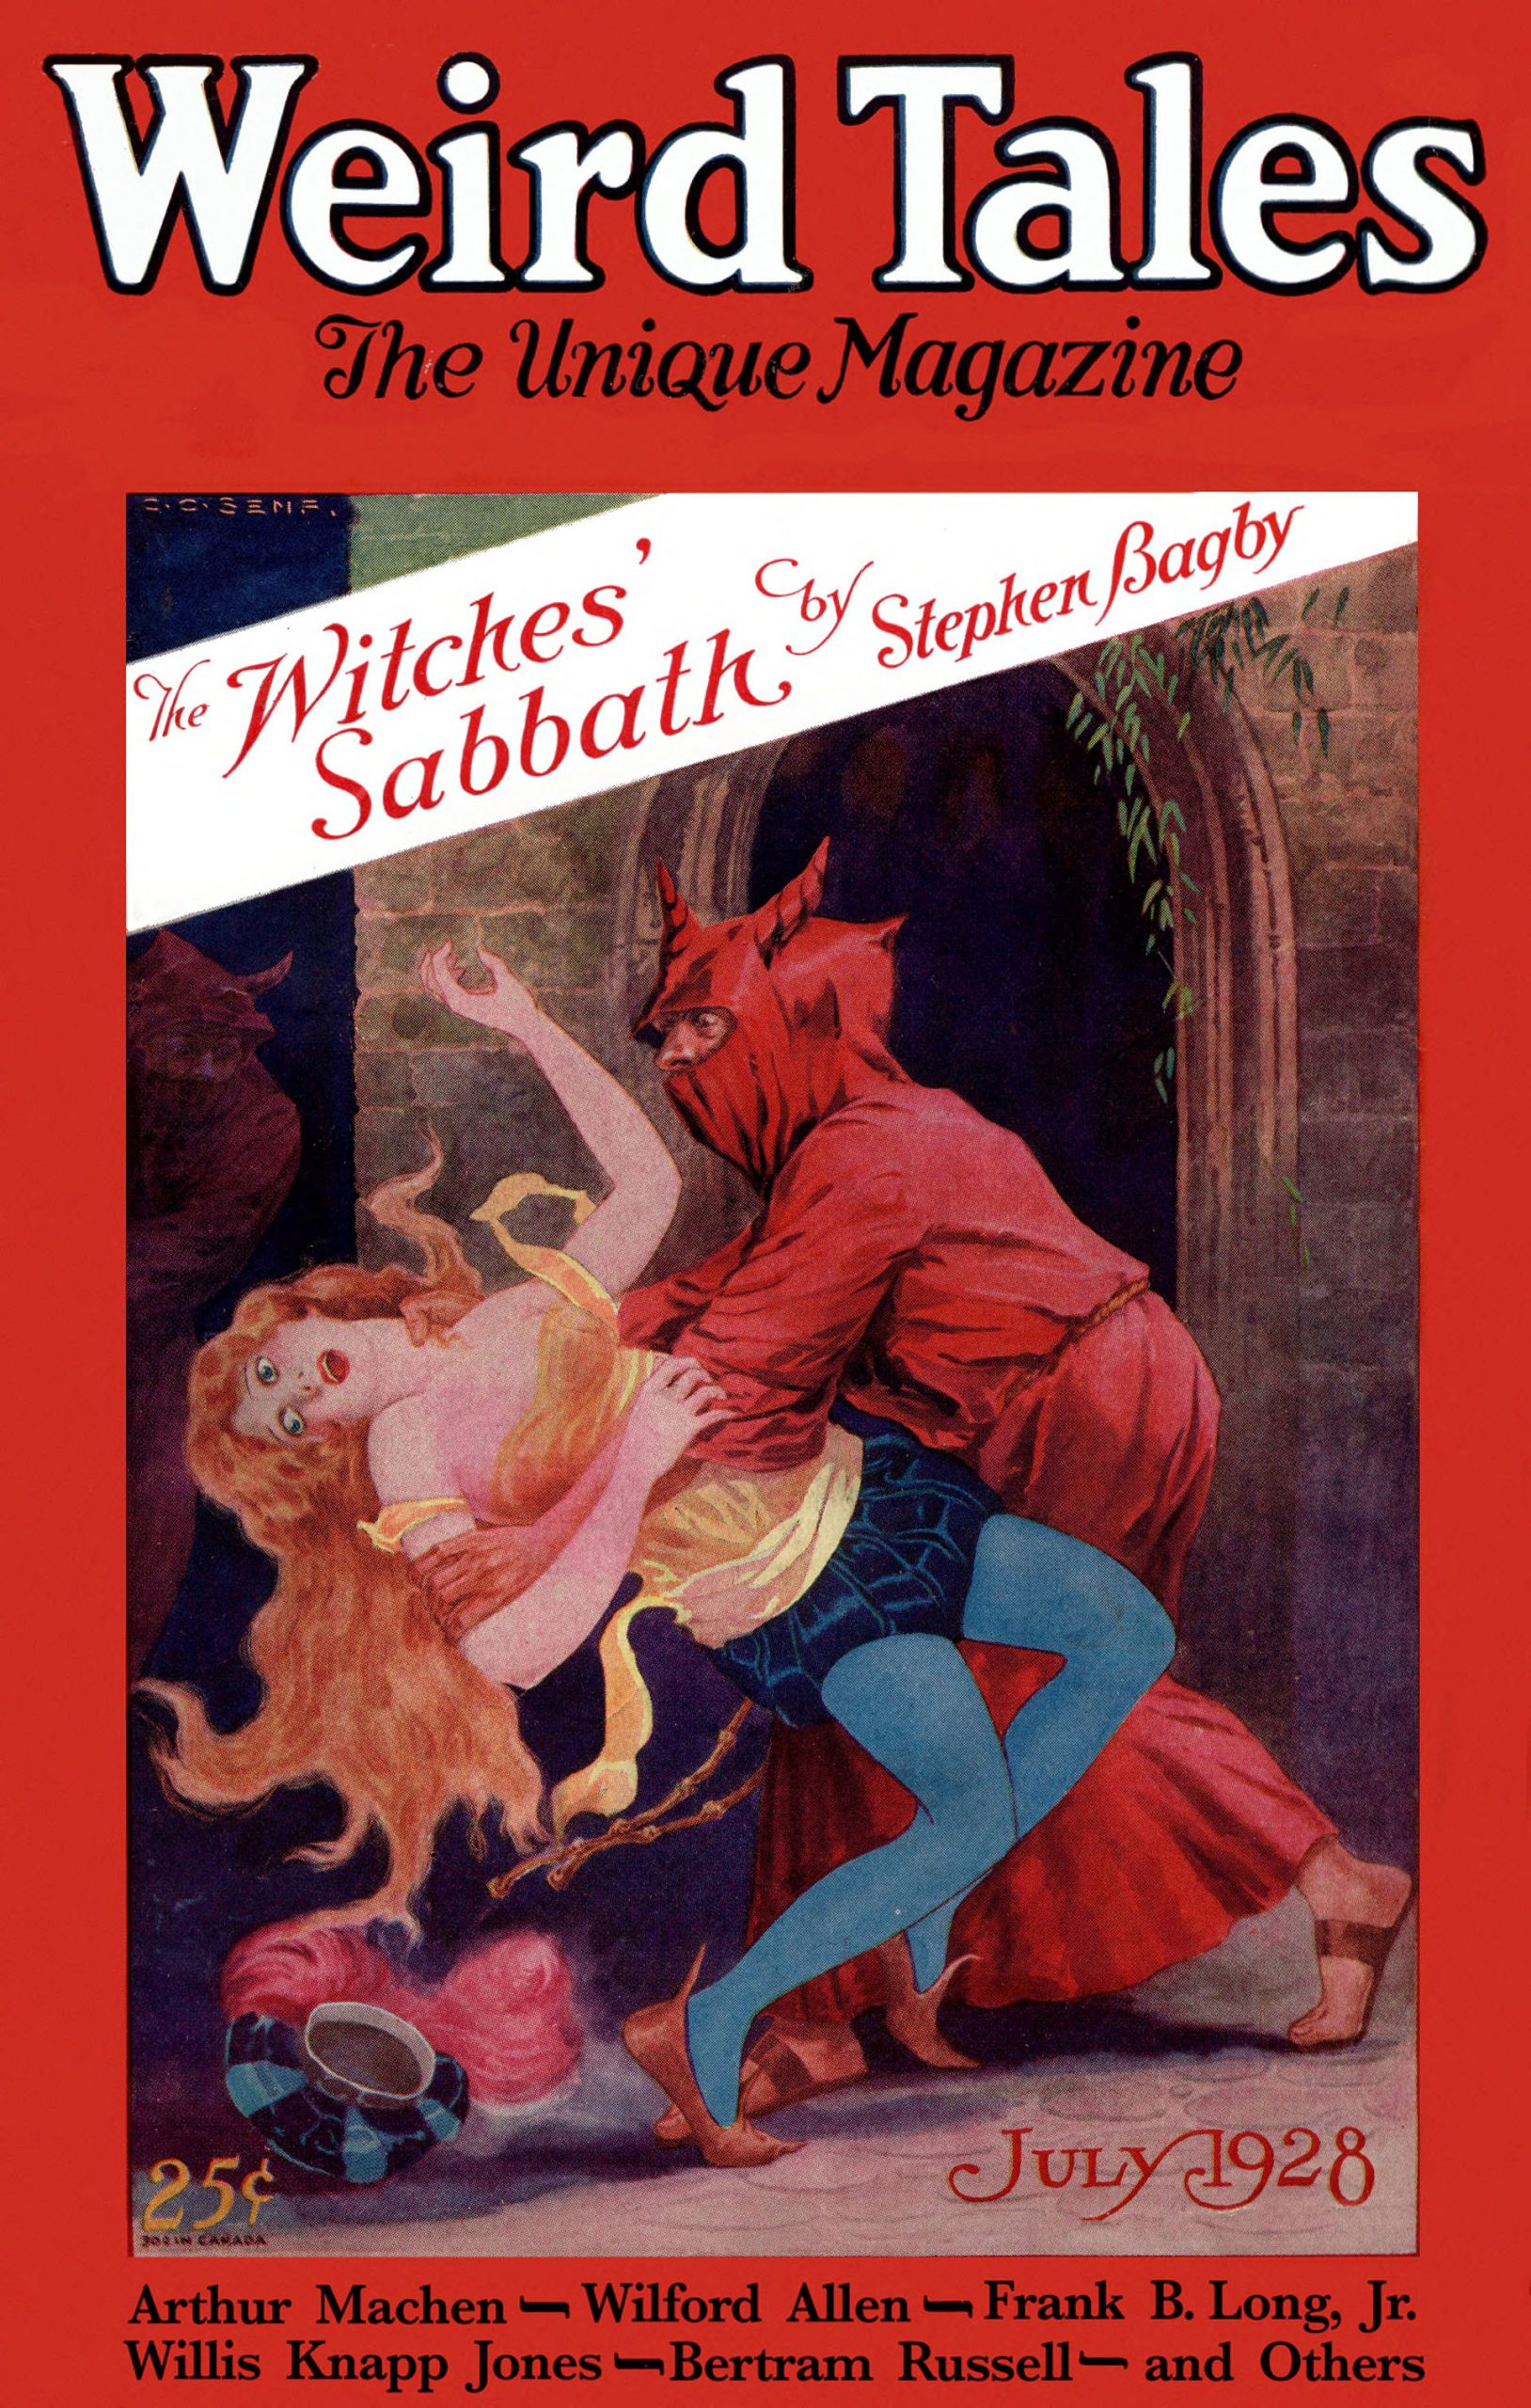 A C.C. Senf cover for Weird Tales, July 1928.  A redhead is meanced by a man in a red costume.